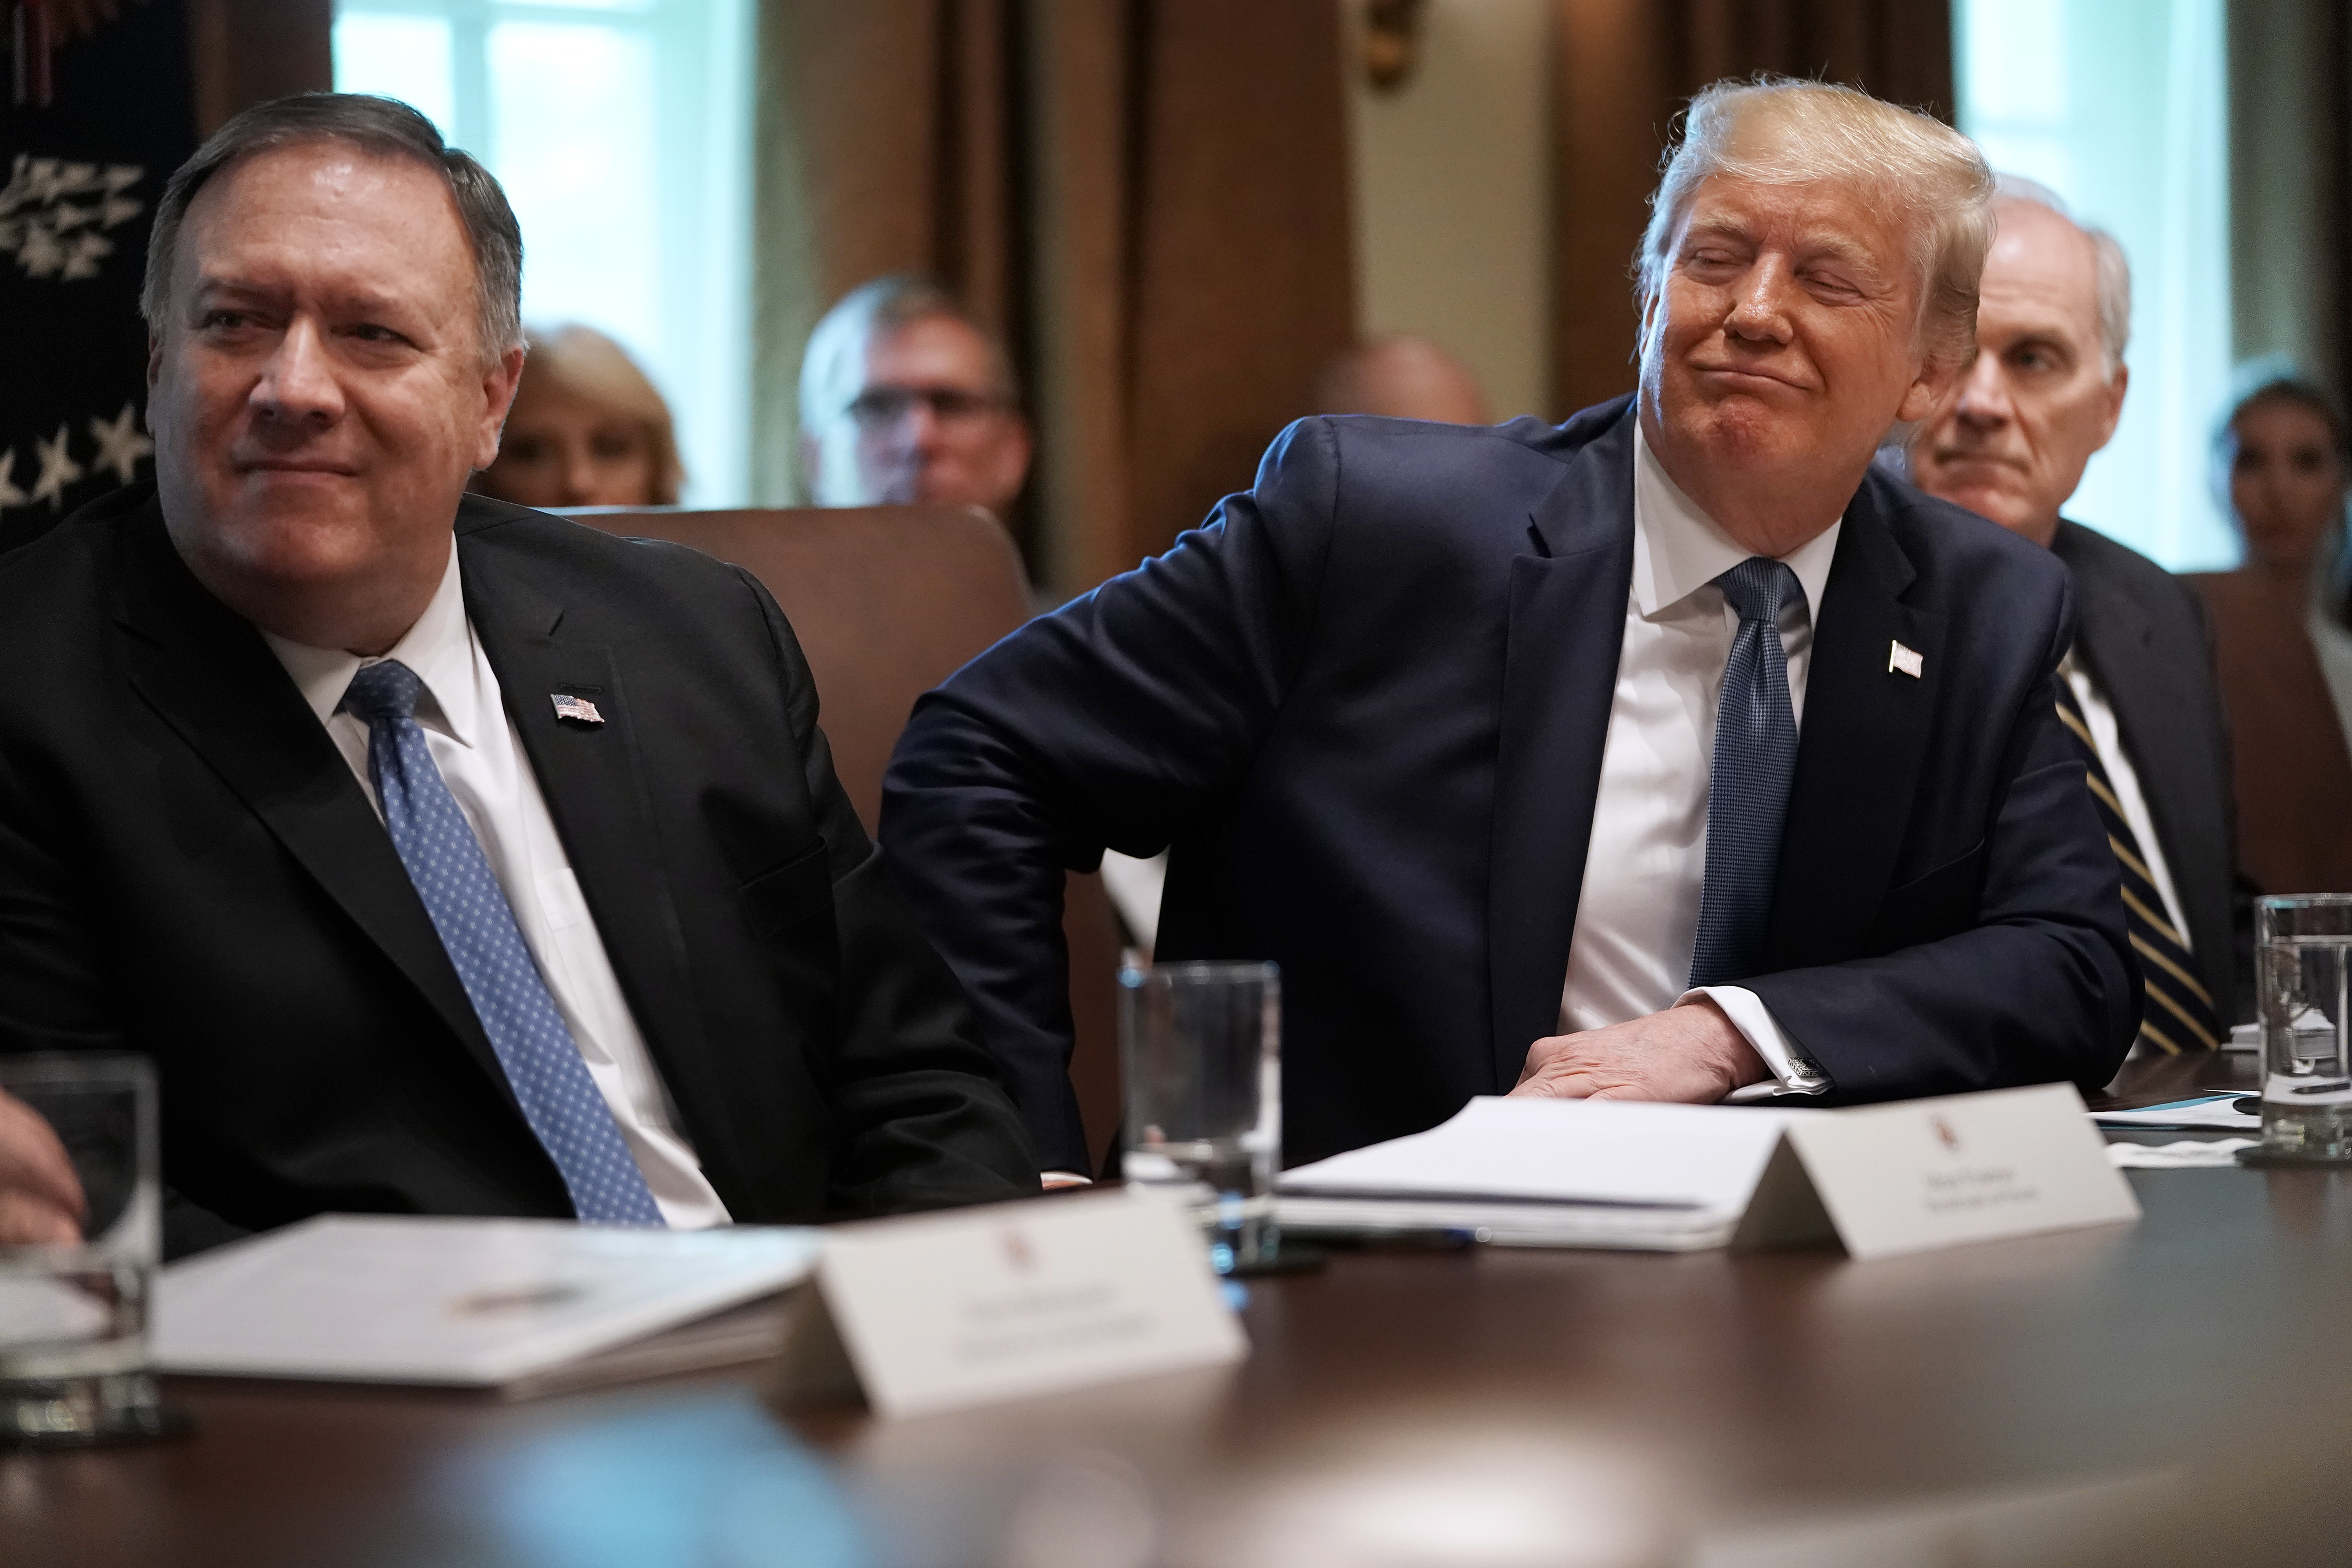 Trump and Secretary of State Mike Pompeo listen during a July 2019 cabinet meeting.